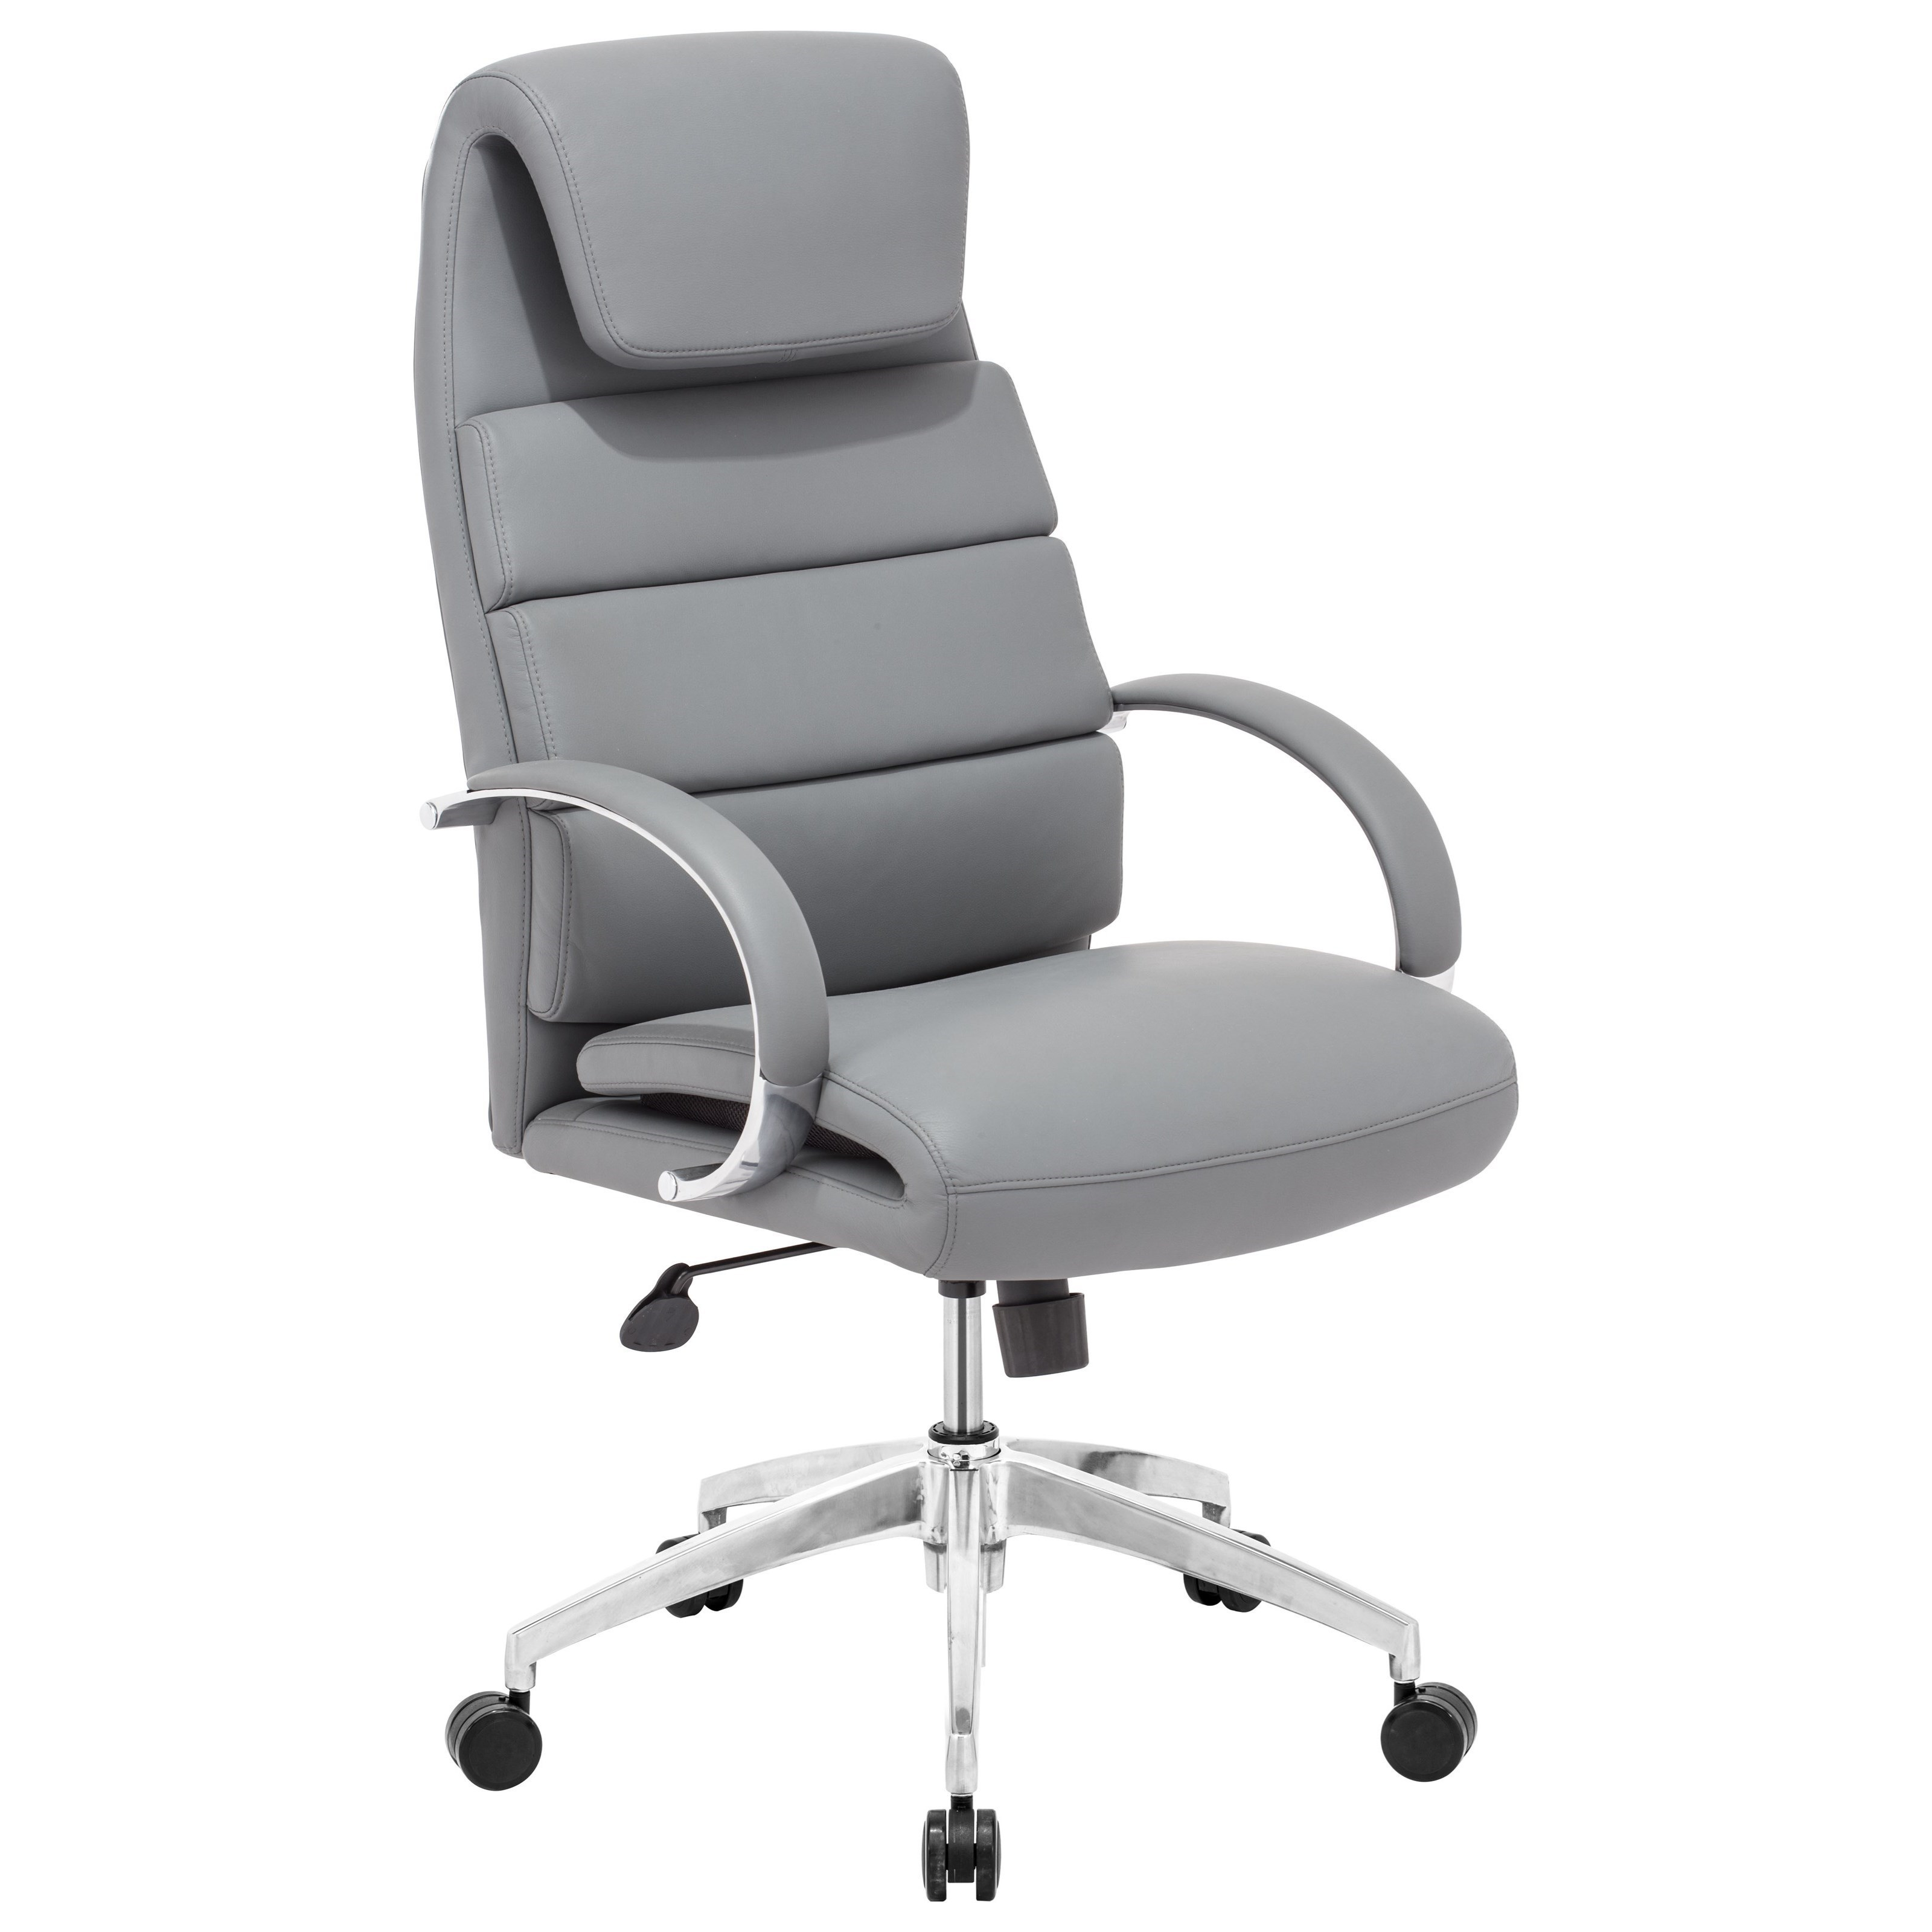 royal comfort office chair royal. Zuo Lider ComfortOffice Chair Royal Comfort Office .